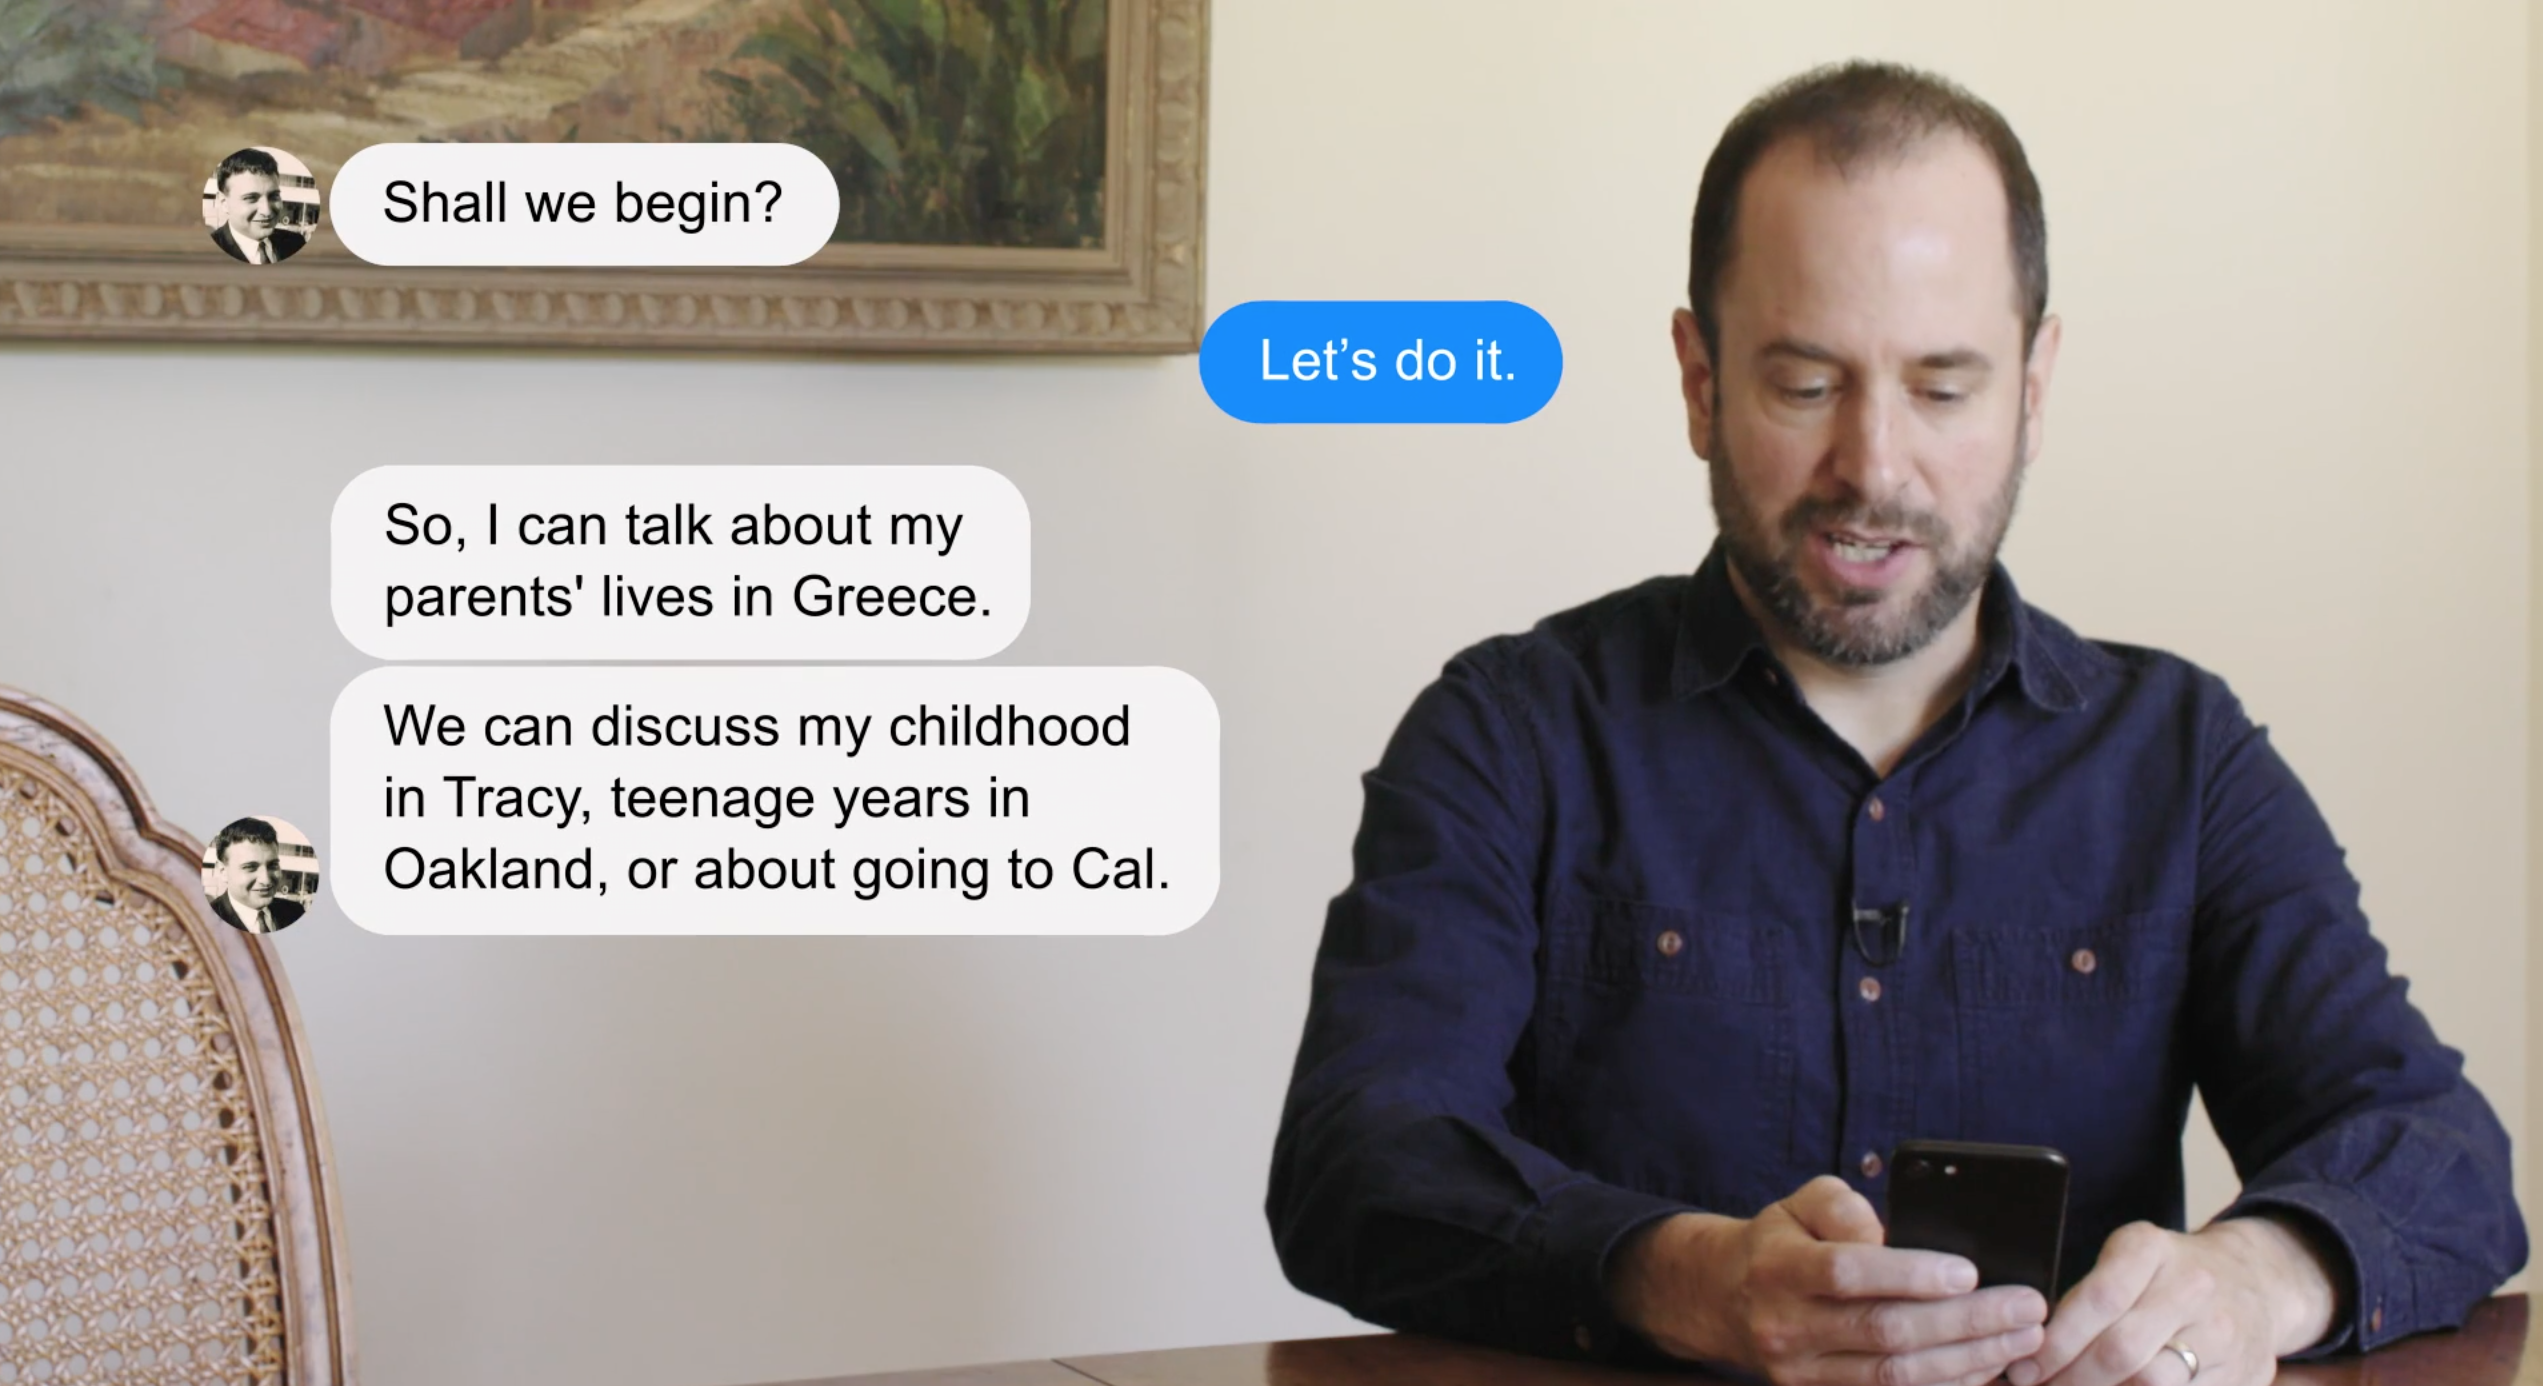 Man texting an AI agent on his phone. The conversation is rendered in bubbles in the image